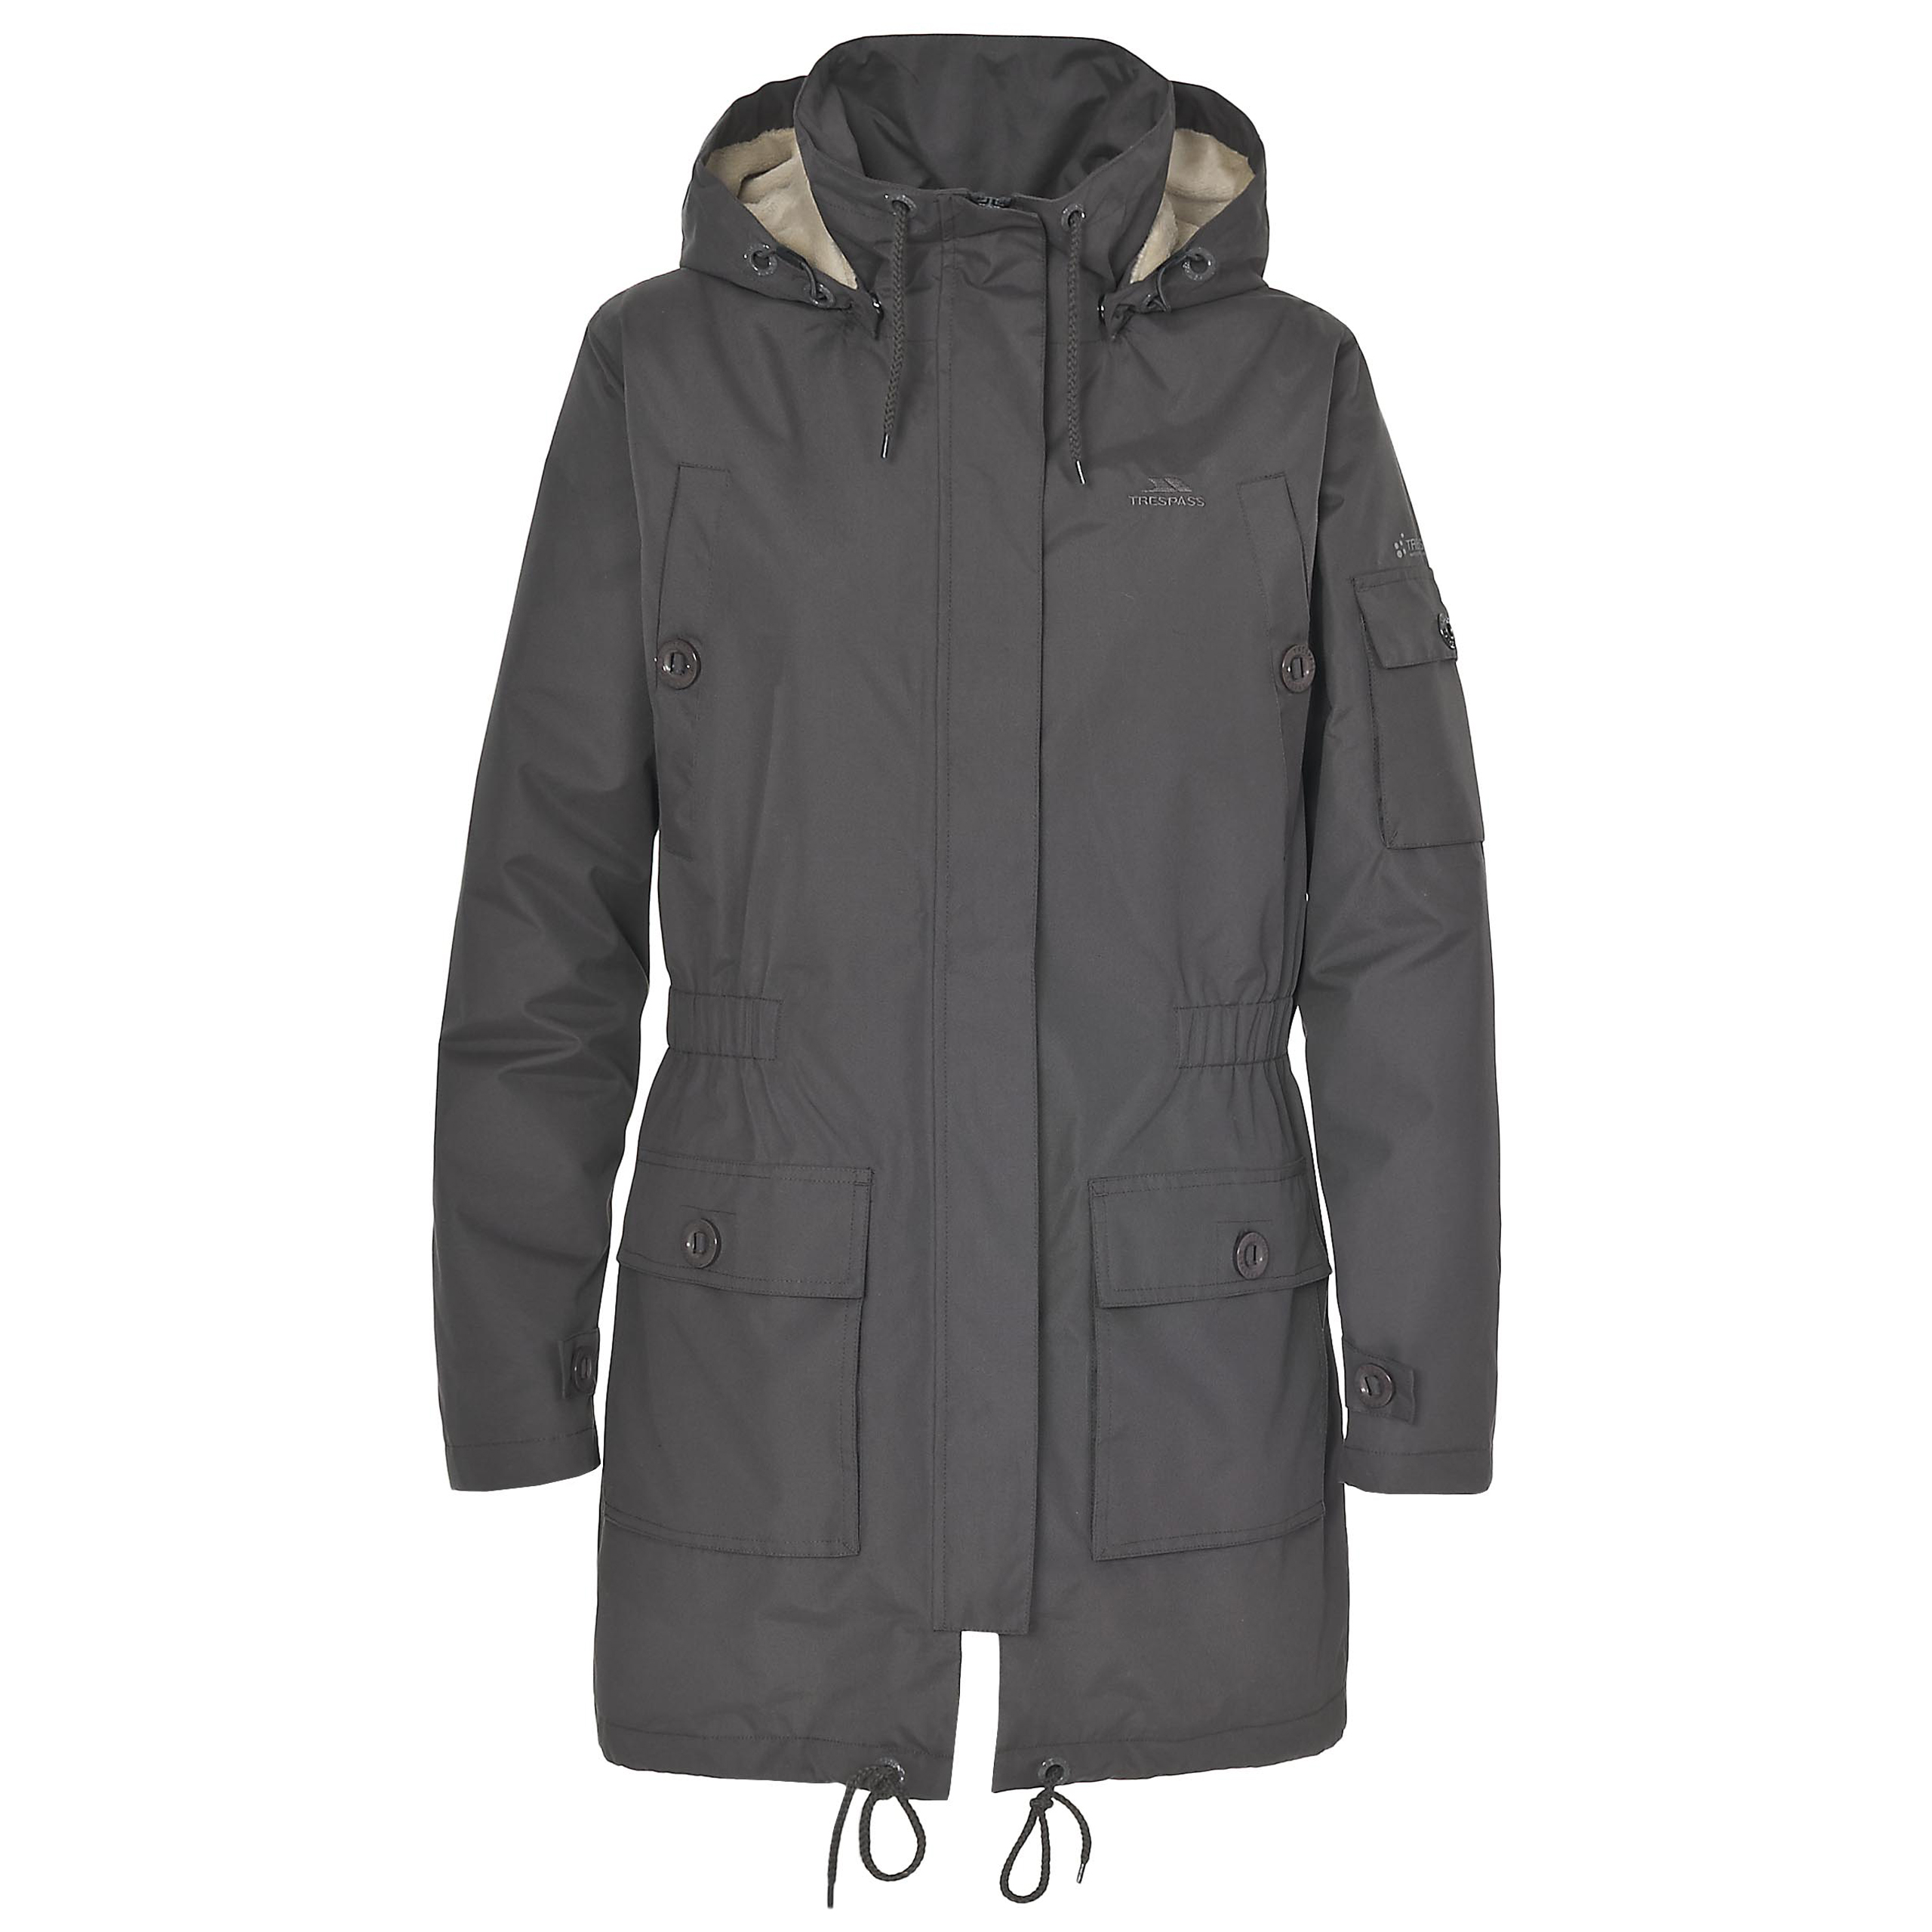 Shop the latest styles of Womens Waterproof/Water Resistant Coats at Macys. Check out our designer collection of chic coats including peacoats, trench coats, puffer coats and more! Removable Hood () Waterproof/Water Resistant () Coat Length MICHAEL Michael Kors Hooded Waterproof .